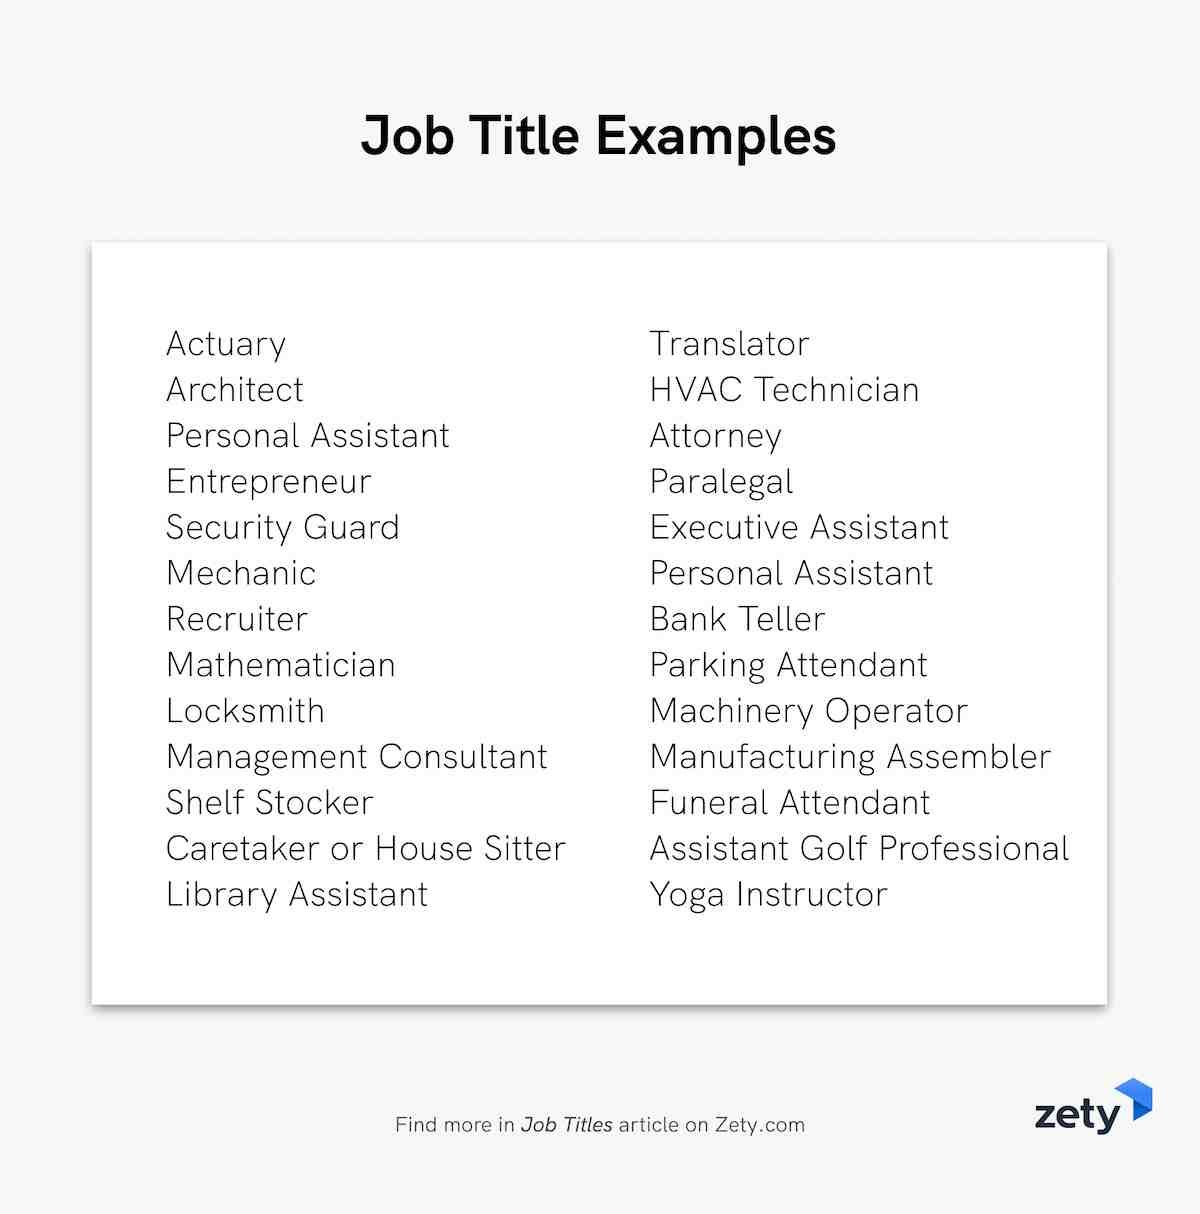 job titles for professional positions current desired category on resume title examples Resume Job Category On A Resume